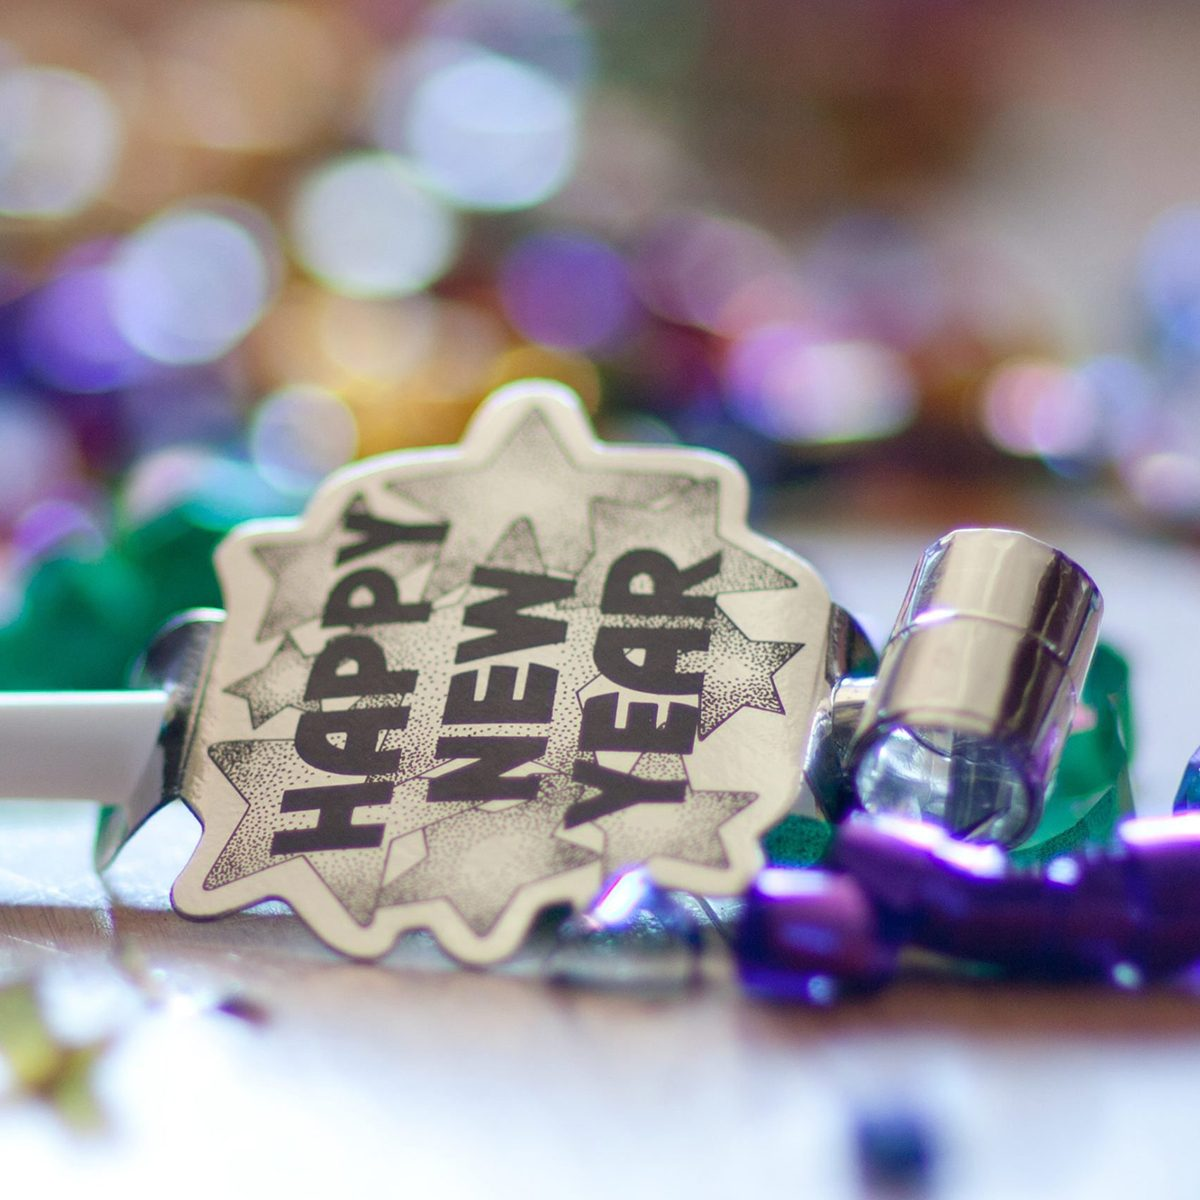 After the new year's eve party. A single party horn blower is found on the floor with fun, colorful confetti.